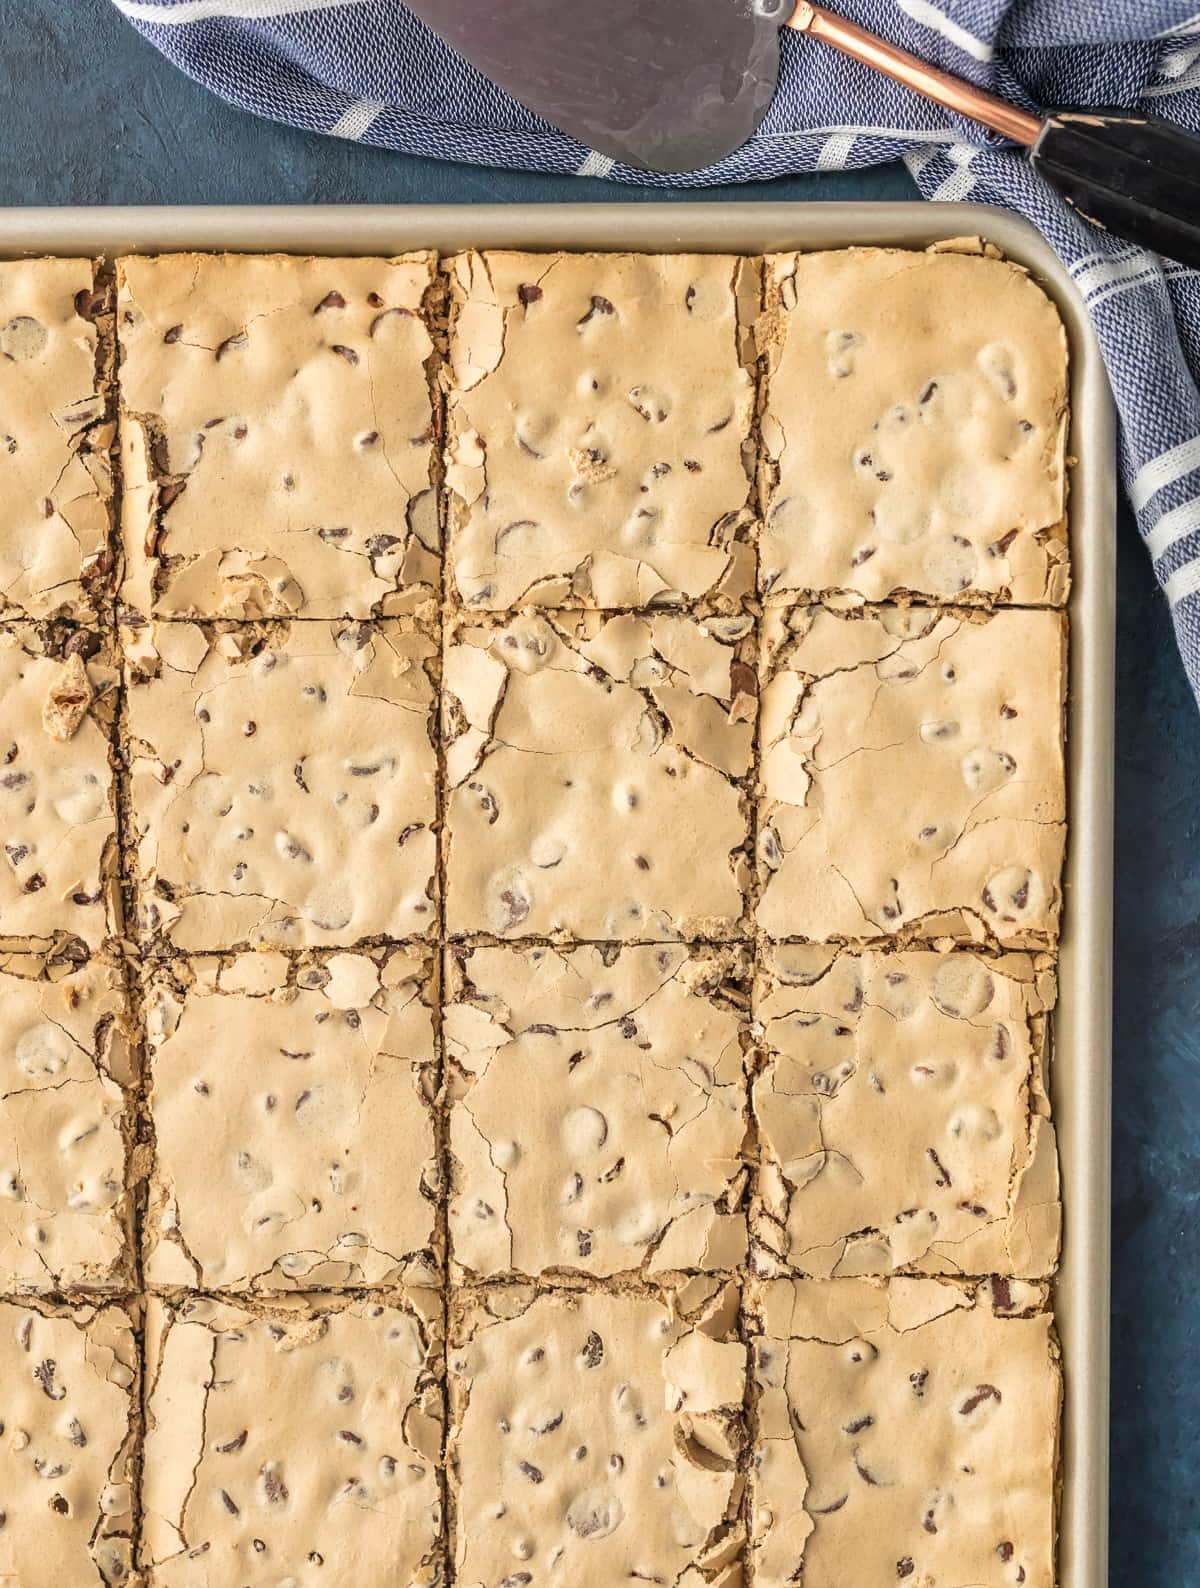 These HALFWAY TO HEAVEN BARS are the ultimate holiday dessert! Half chocolate chip cookie, half meringue. Baking amazing cookie bars has never been easier or more delicious. The perfect Christmas dessert!